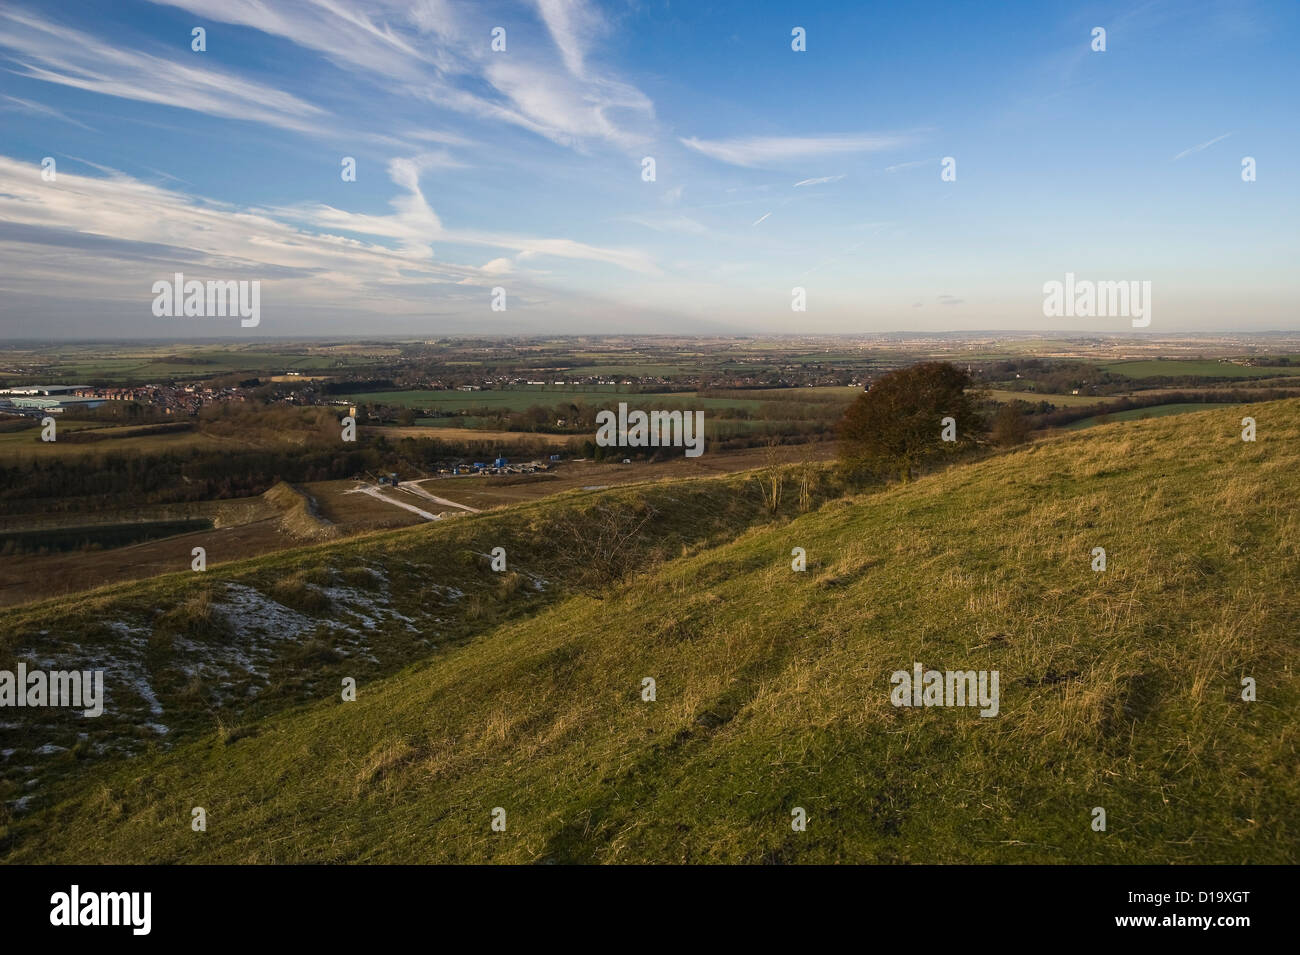 The Grim's Ditch on The Ridgeway National Trail on Pitstone Hill, Buckinghamshire, UK - Stock Image